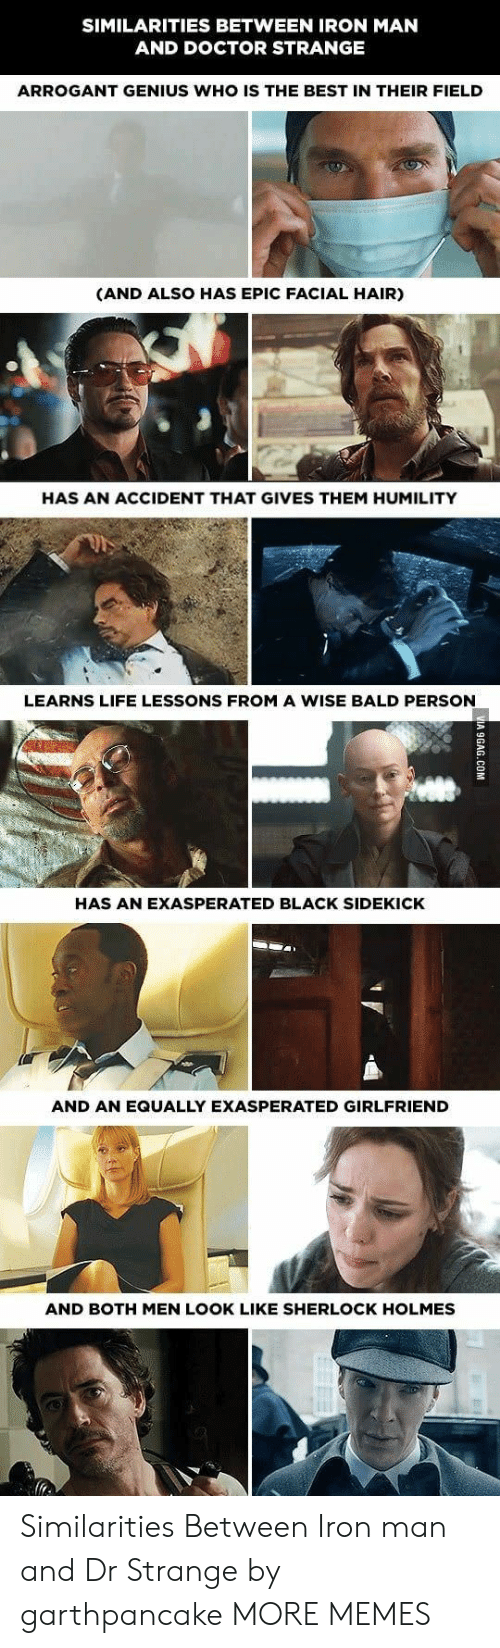 Sherlock Holmes: SIMILARITIES BETWEEN IRON MAN  AND DOCTOR STRANGE  ARROGANT GENIUS WHO IS THE BEST IN THEIR FIELD  (AND ALSO HAS EPIC FACIAL HAIR)  HAS AN ACCIDENT THAT GIVES THEM HUMILITY  LEARNS LIFE LESSONS FROM A WISE BALD PERSON  HAS AN EXASPERATED BLACK SIDEKICK  AND AN EQUALLY EXASPERATED GIRLFRIEND  AND BOTH MEN LOOK LIKE SHERLOCK HOLMES Similarities Between Iron man and Dr Strange by garthpancake MORE MEMES